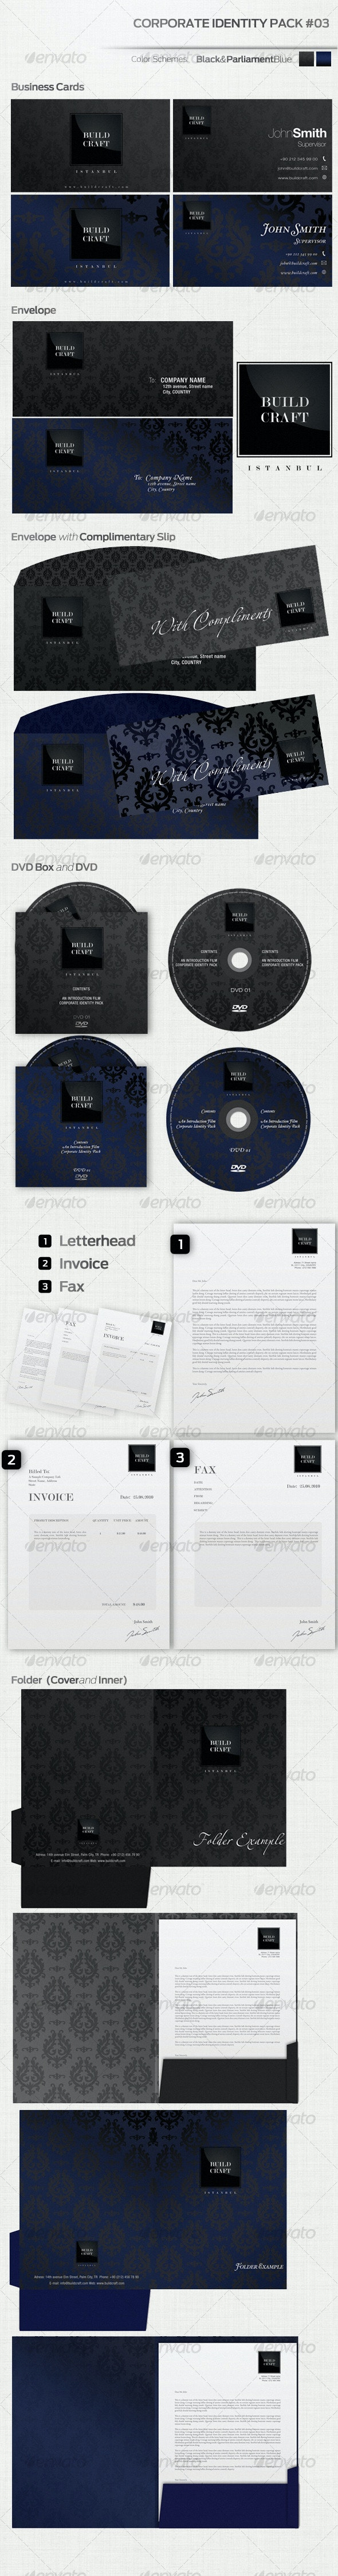 Corporate Identity Pack #03 - Stationery Print Templates